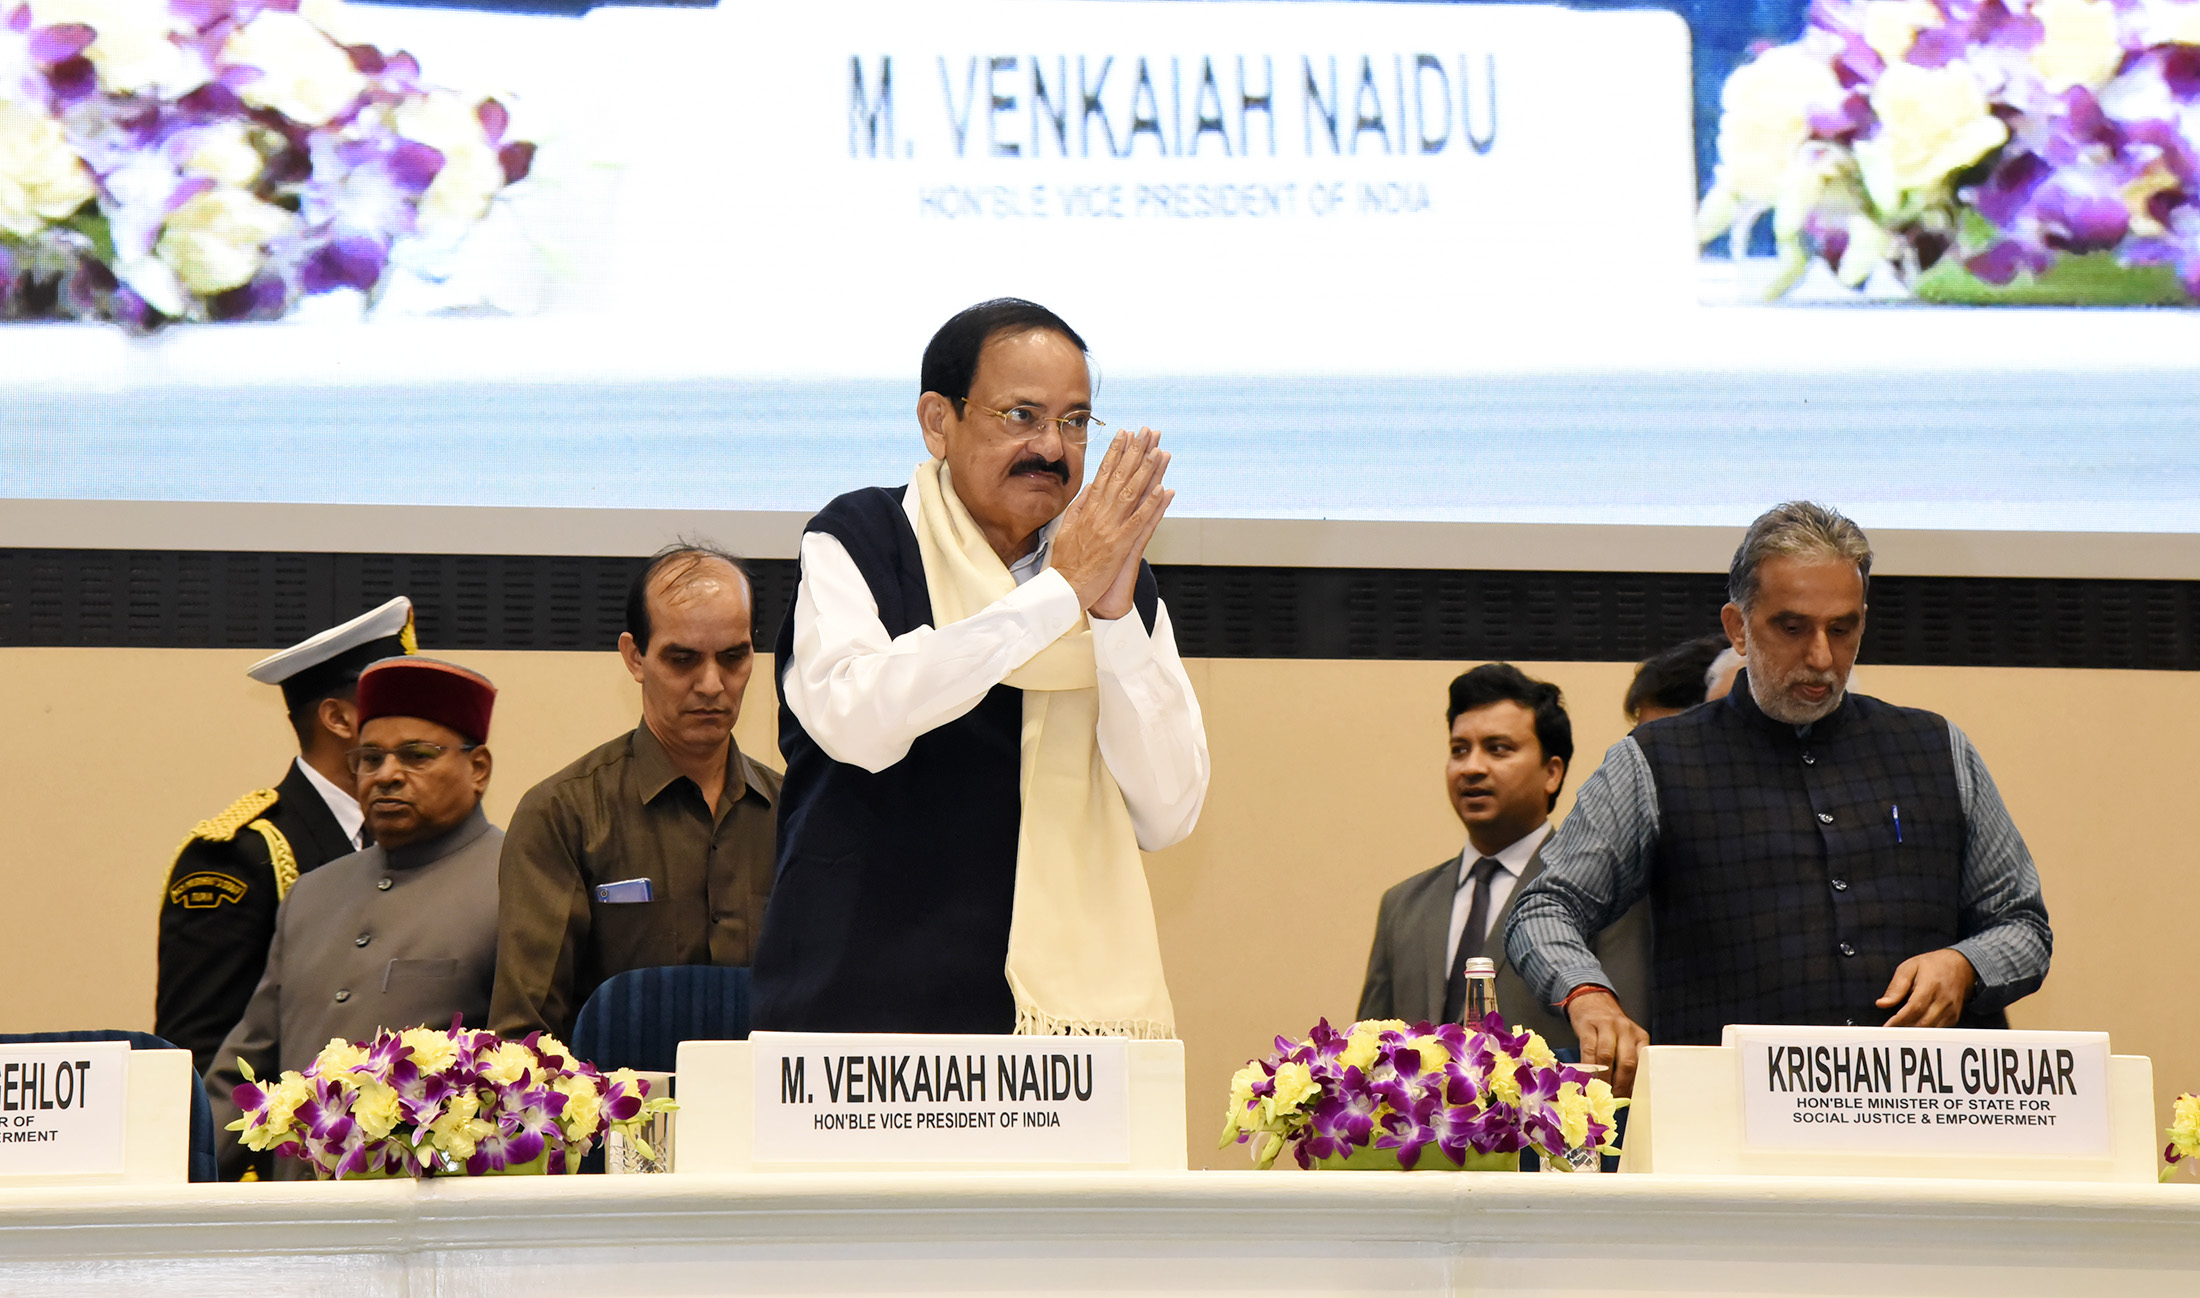 The Vice President, Shri M. Venkaiah Naidu, at the National Awards for the Empowerment of Persons with Disabilities, in New Delhi on December 3, 2019.